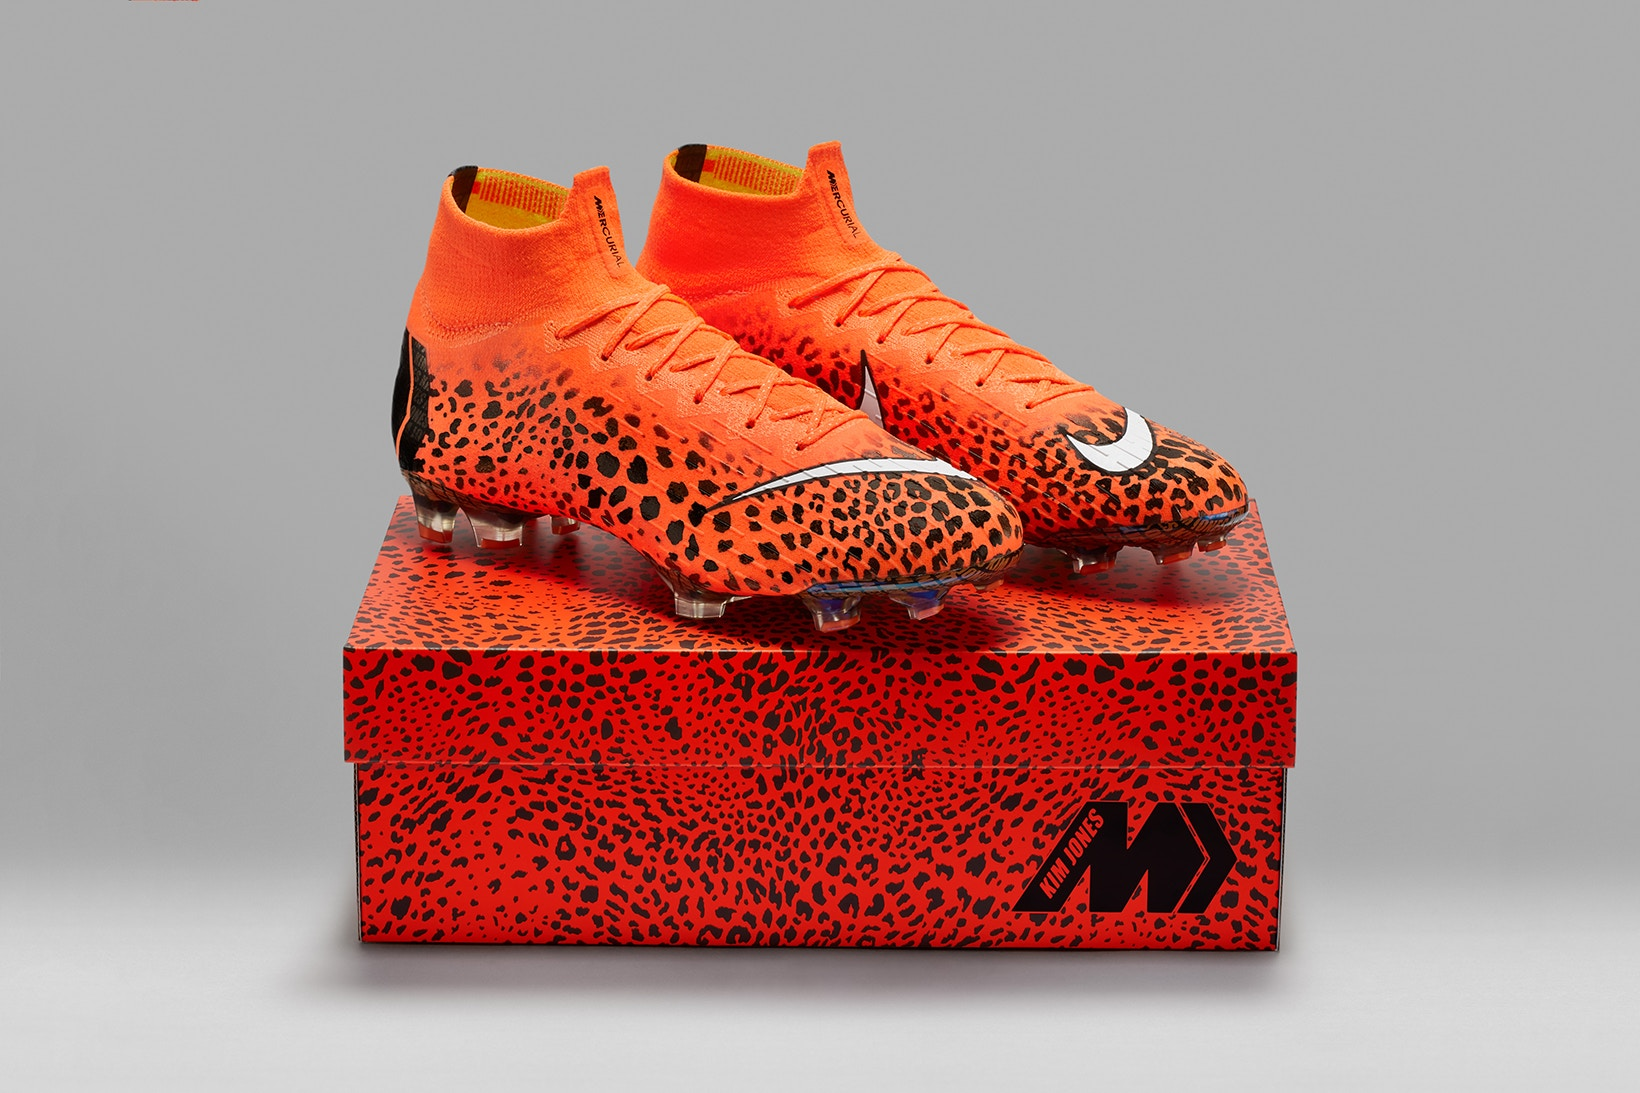 Kim Jones Reworks Nike Mercurial Football Boots kim jones nike football boot mercurial superfly 004